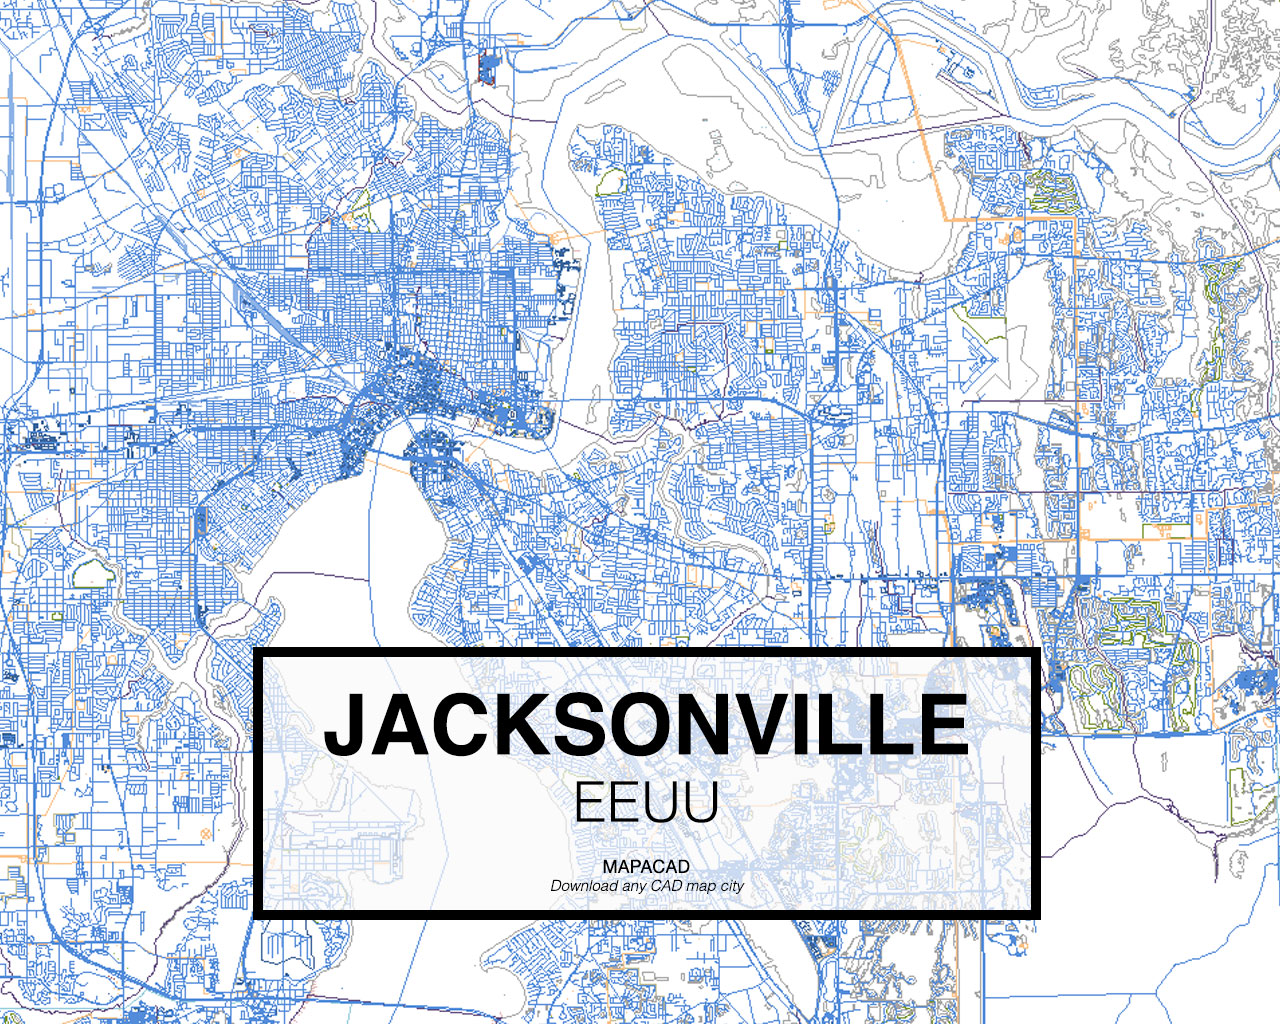 Download jacksonville dwg mapacad jacksonville eeuu 01 mapacad download map cad dwg gumiabroncs Gallery